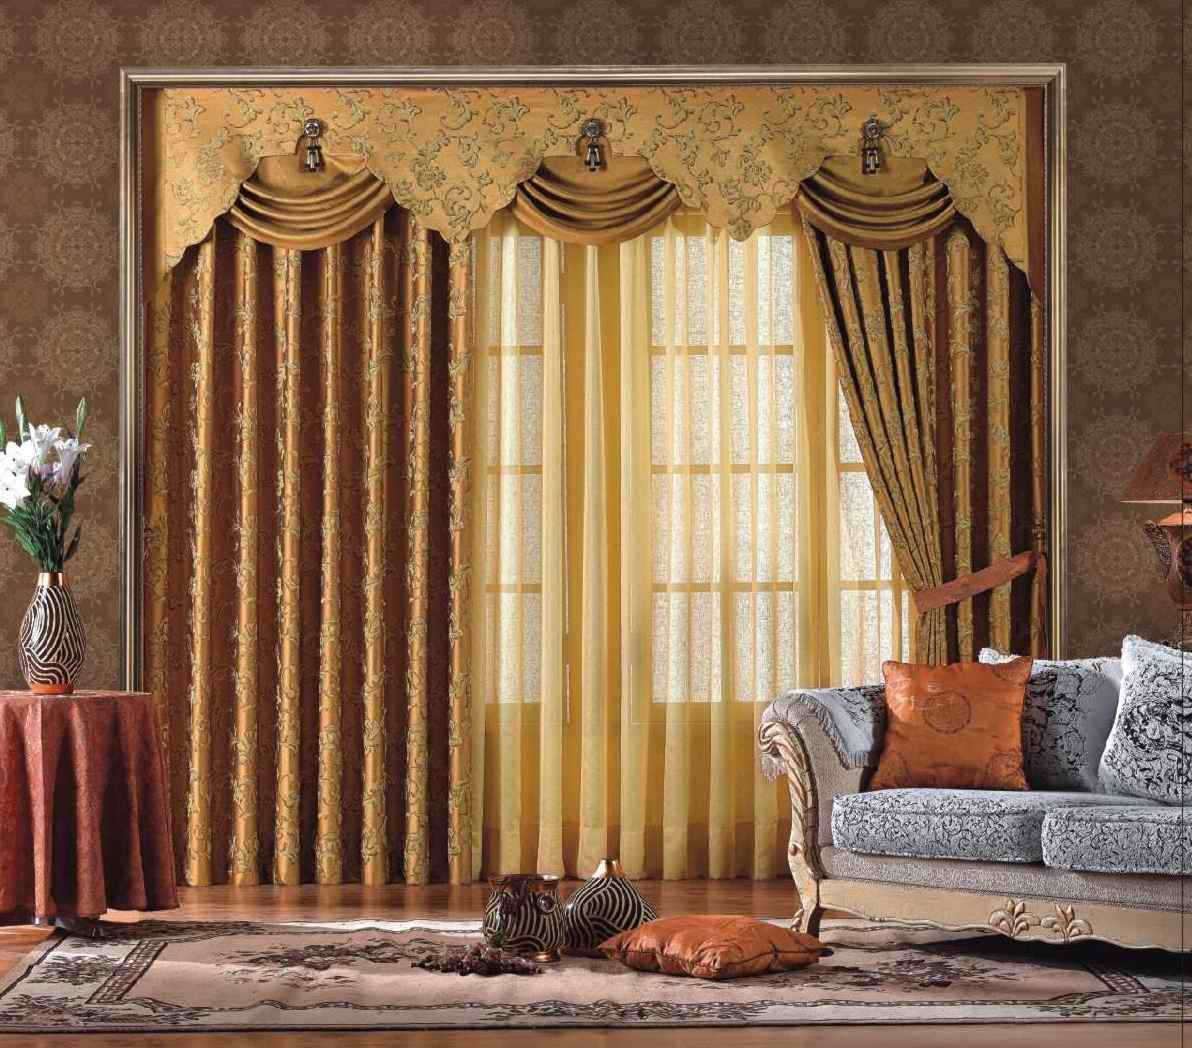 best images about curtains on pinterest make curtains window living room curtain design ideas - Curtains Design Ideas